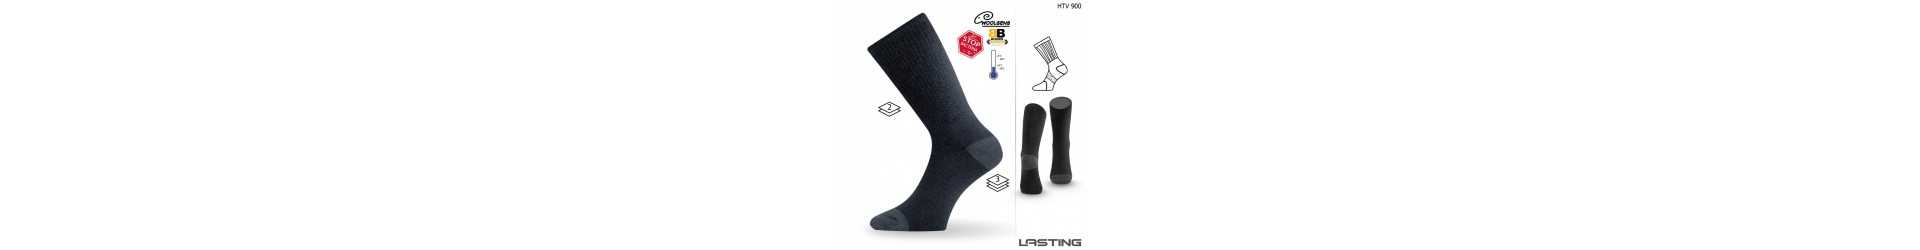 Socks and accessories